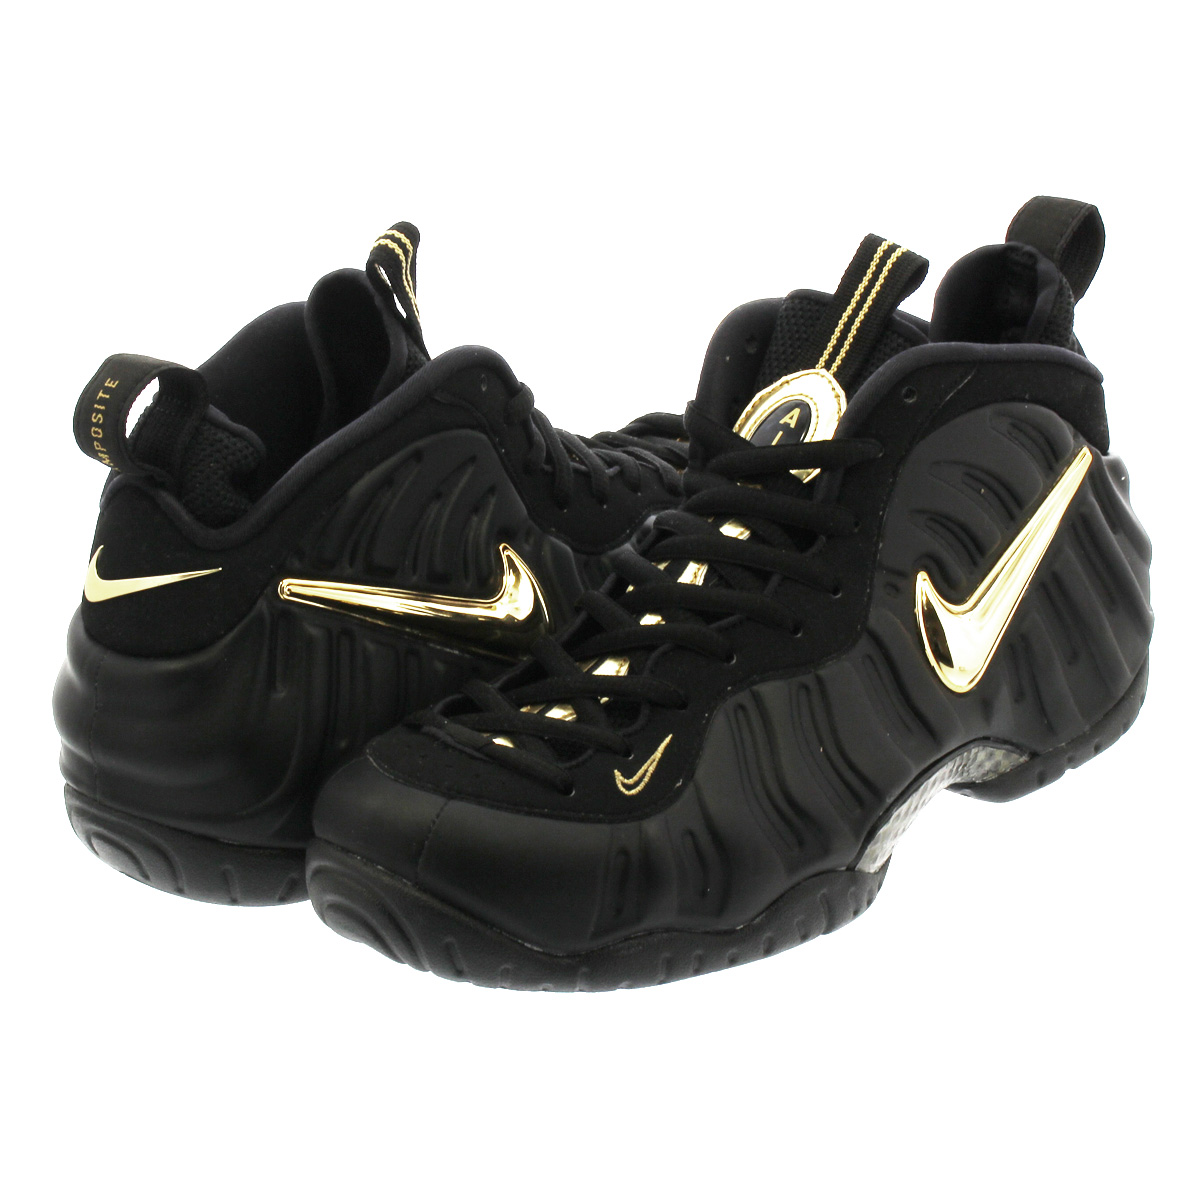 new product ed2a3 6c8f9 NIKE AIR FOAMPOSITE PRO ナイキエアフォームポジットプロ BLACK/METALLIC GOLD 624,041-009